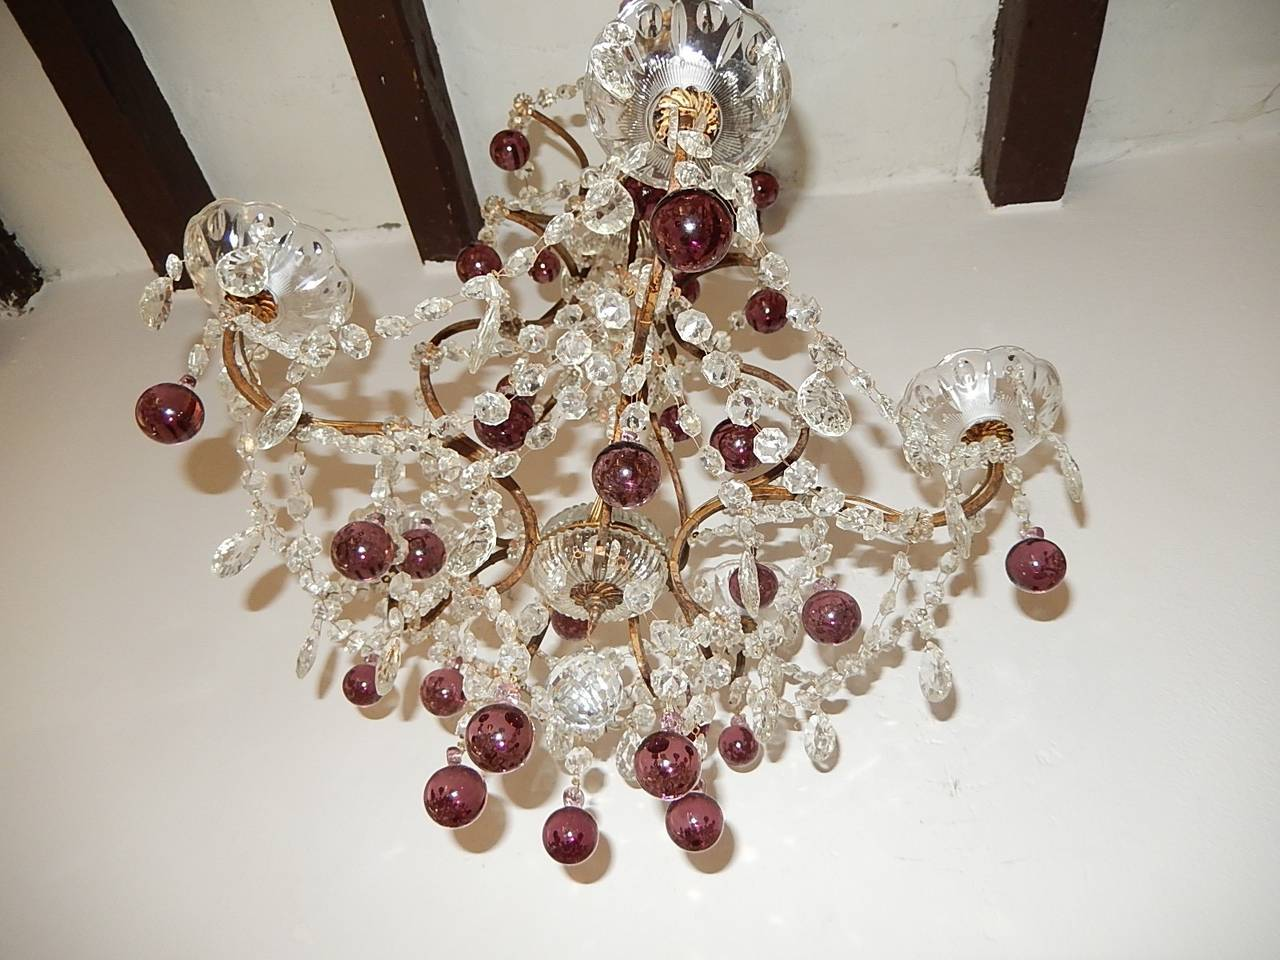 French Amethyst Balls Clear Prisms Chandelier In Excellent Condition For Sale In Modena (MO), IT